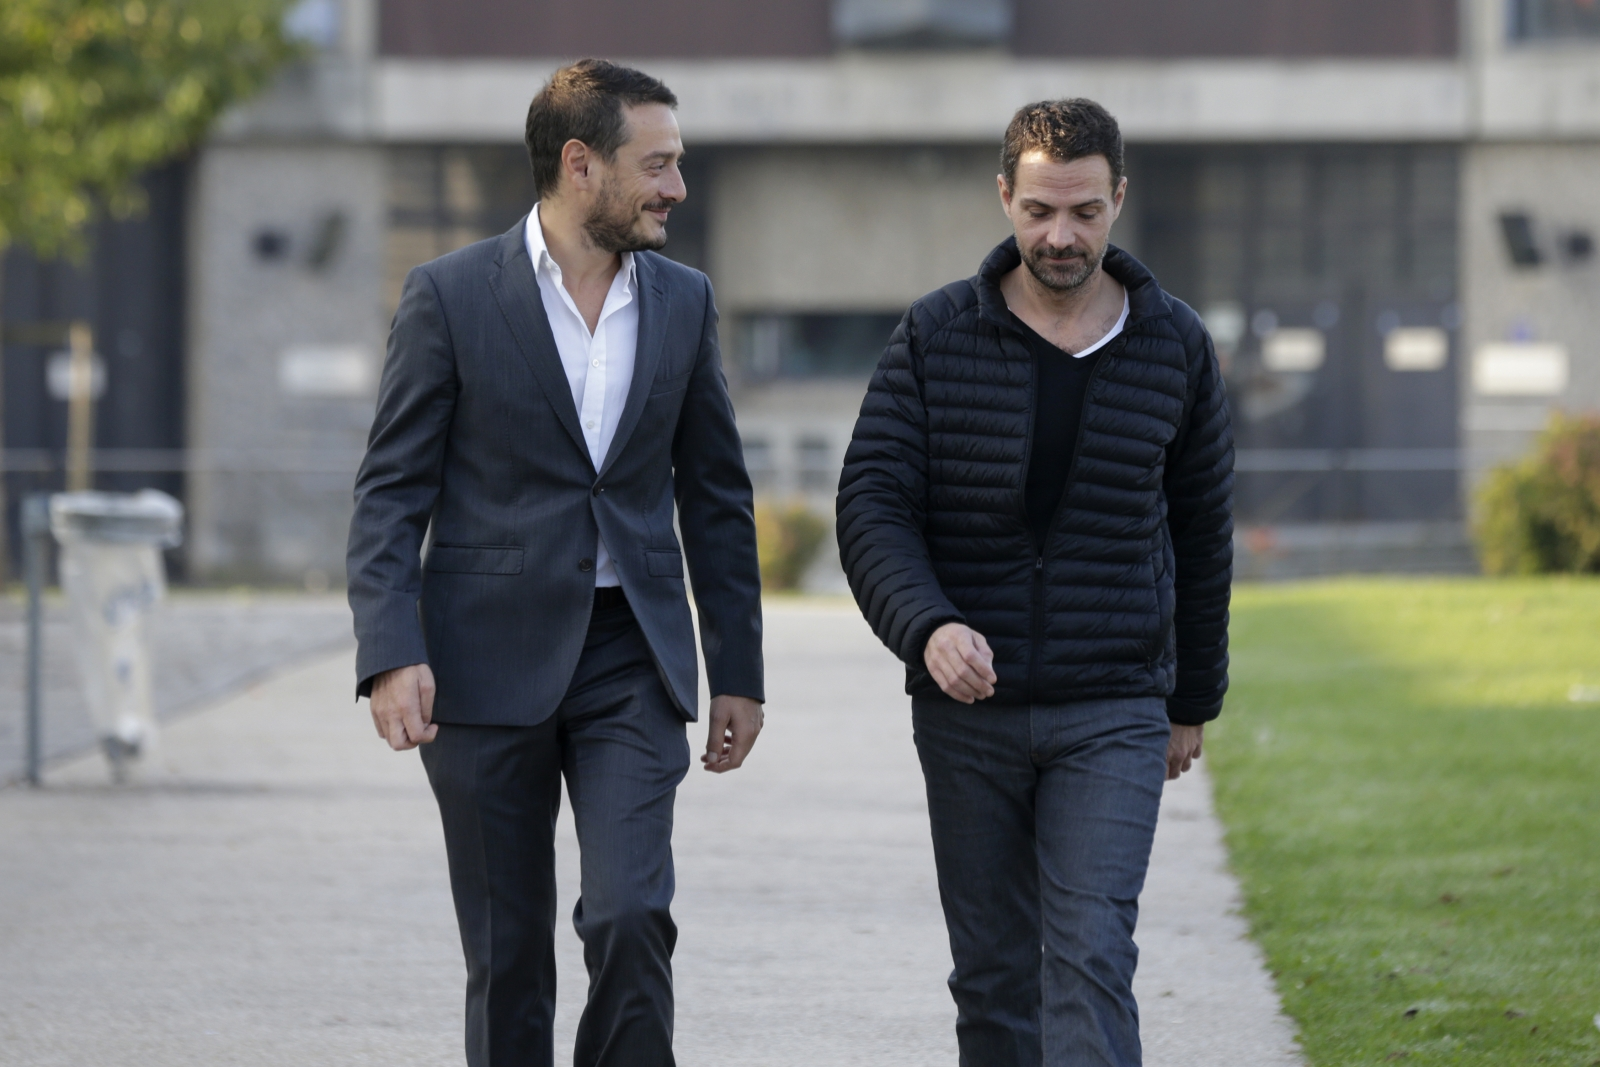 ormer French trader Jerome Kerviel (R) and his lawyer David Koubbi leave the Fleury-Merogis prison near Paris September 8, 2014